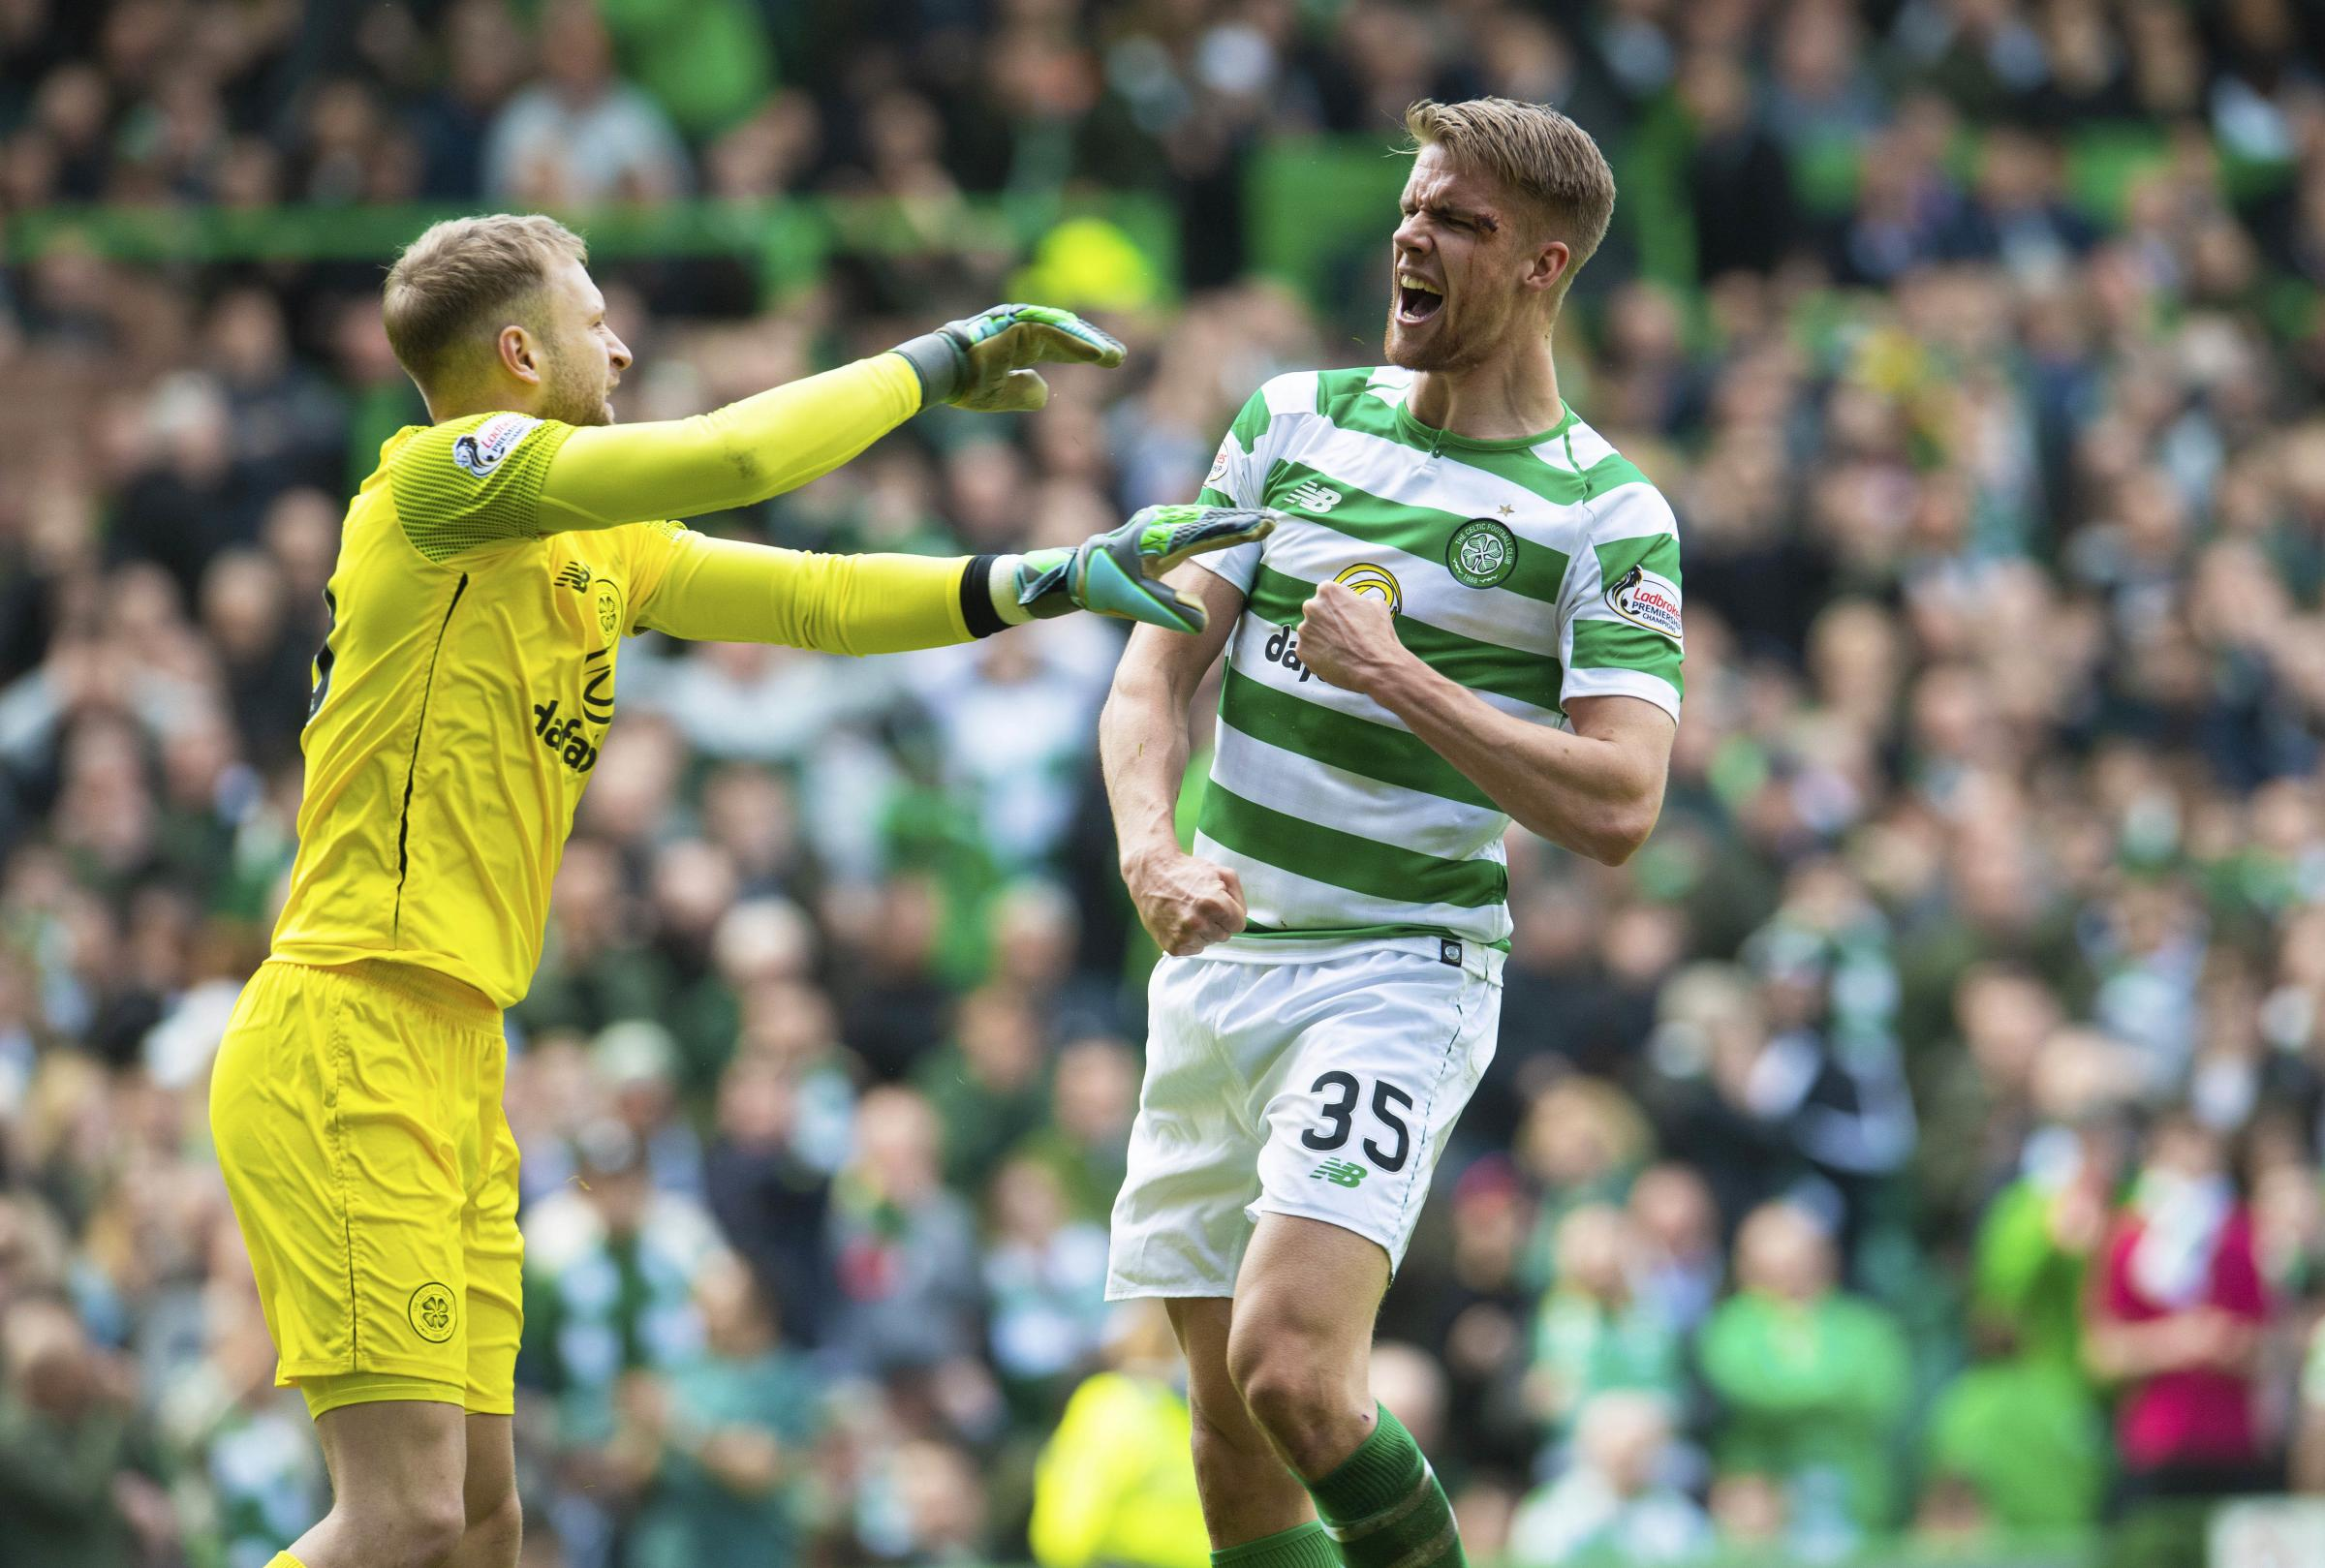 Kristoffer Ajer had his best game for Celtic in the derby